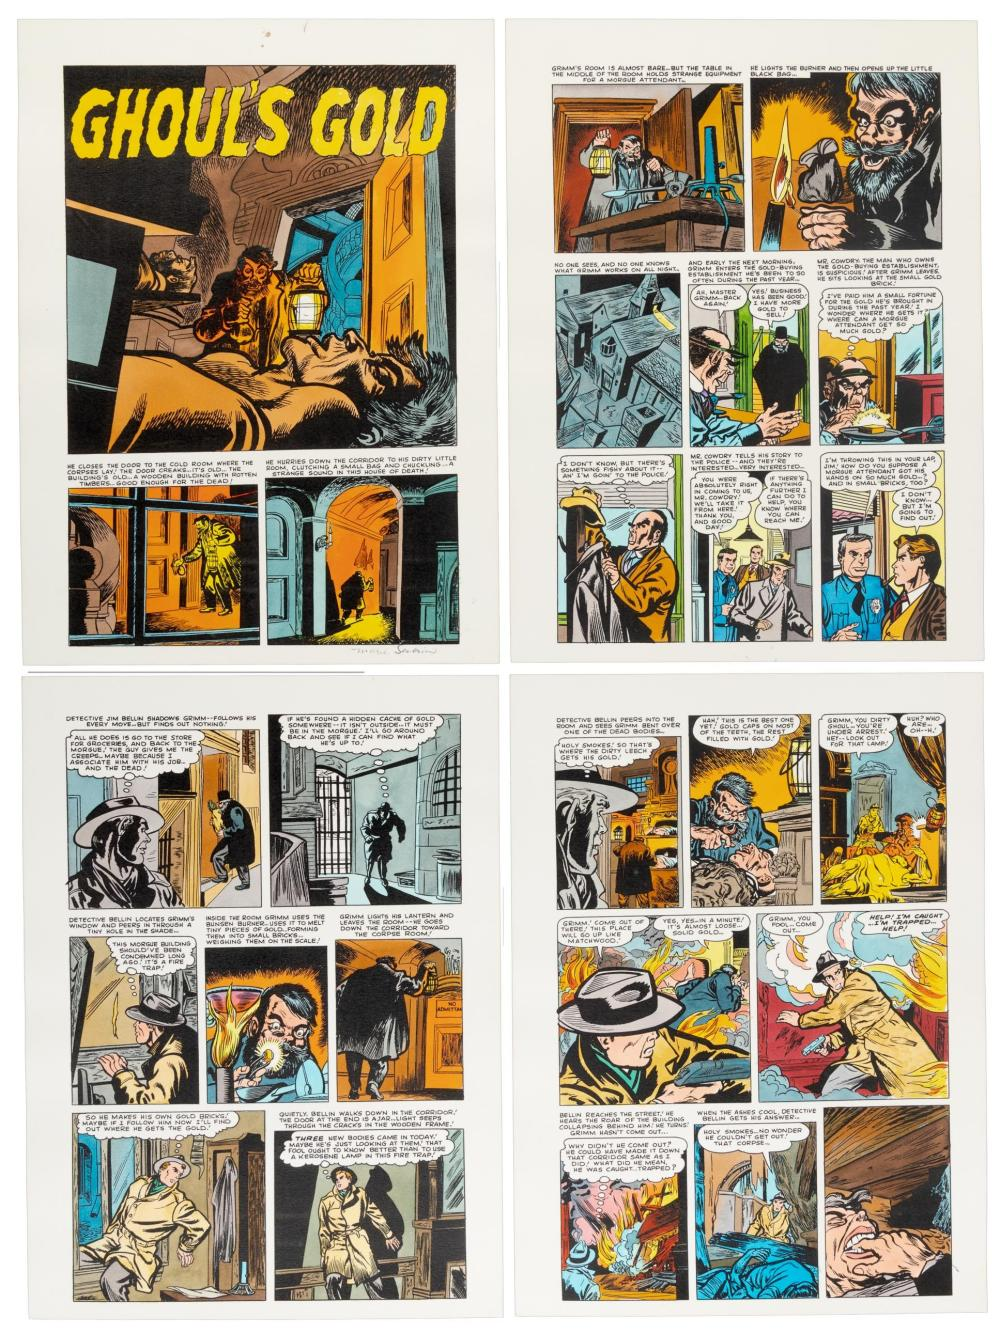 """MARIE SEVERIN Hand-Colored Printer's Proof, Krigstein's """"Ghoul's Gold"""""""